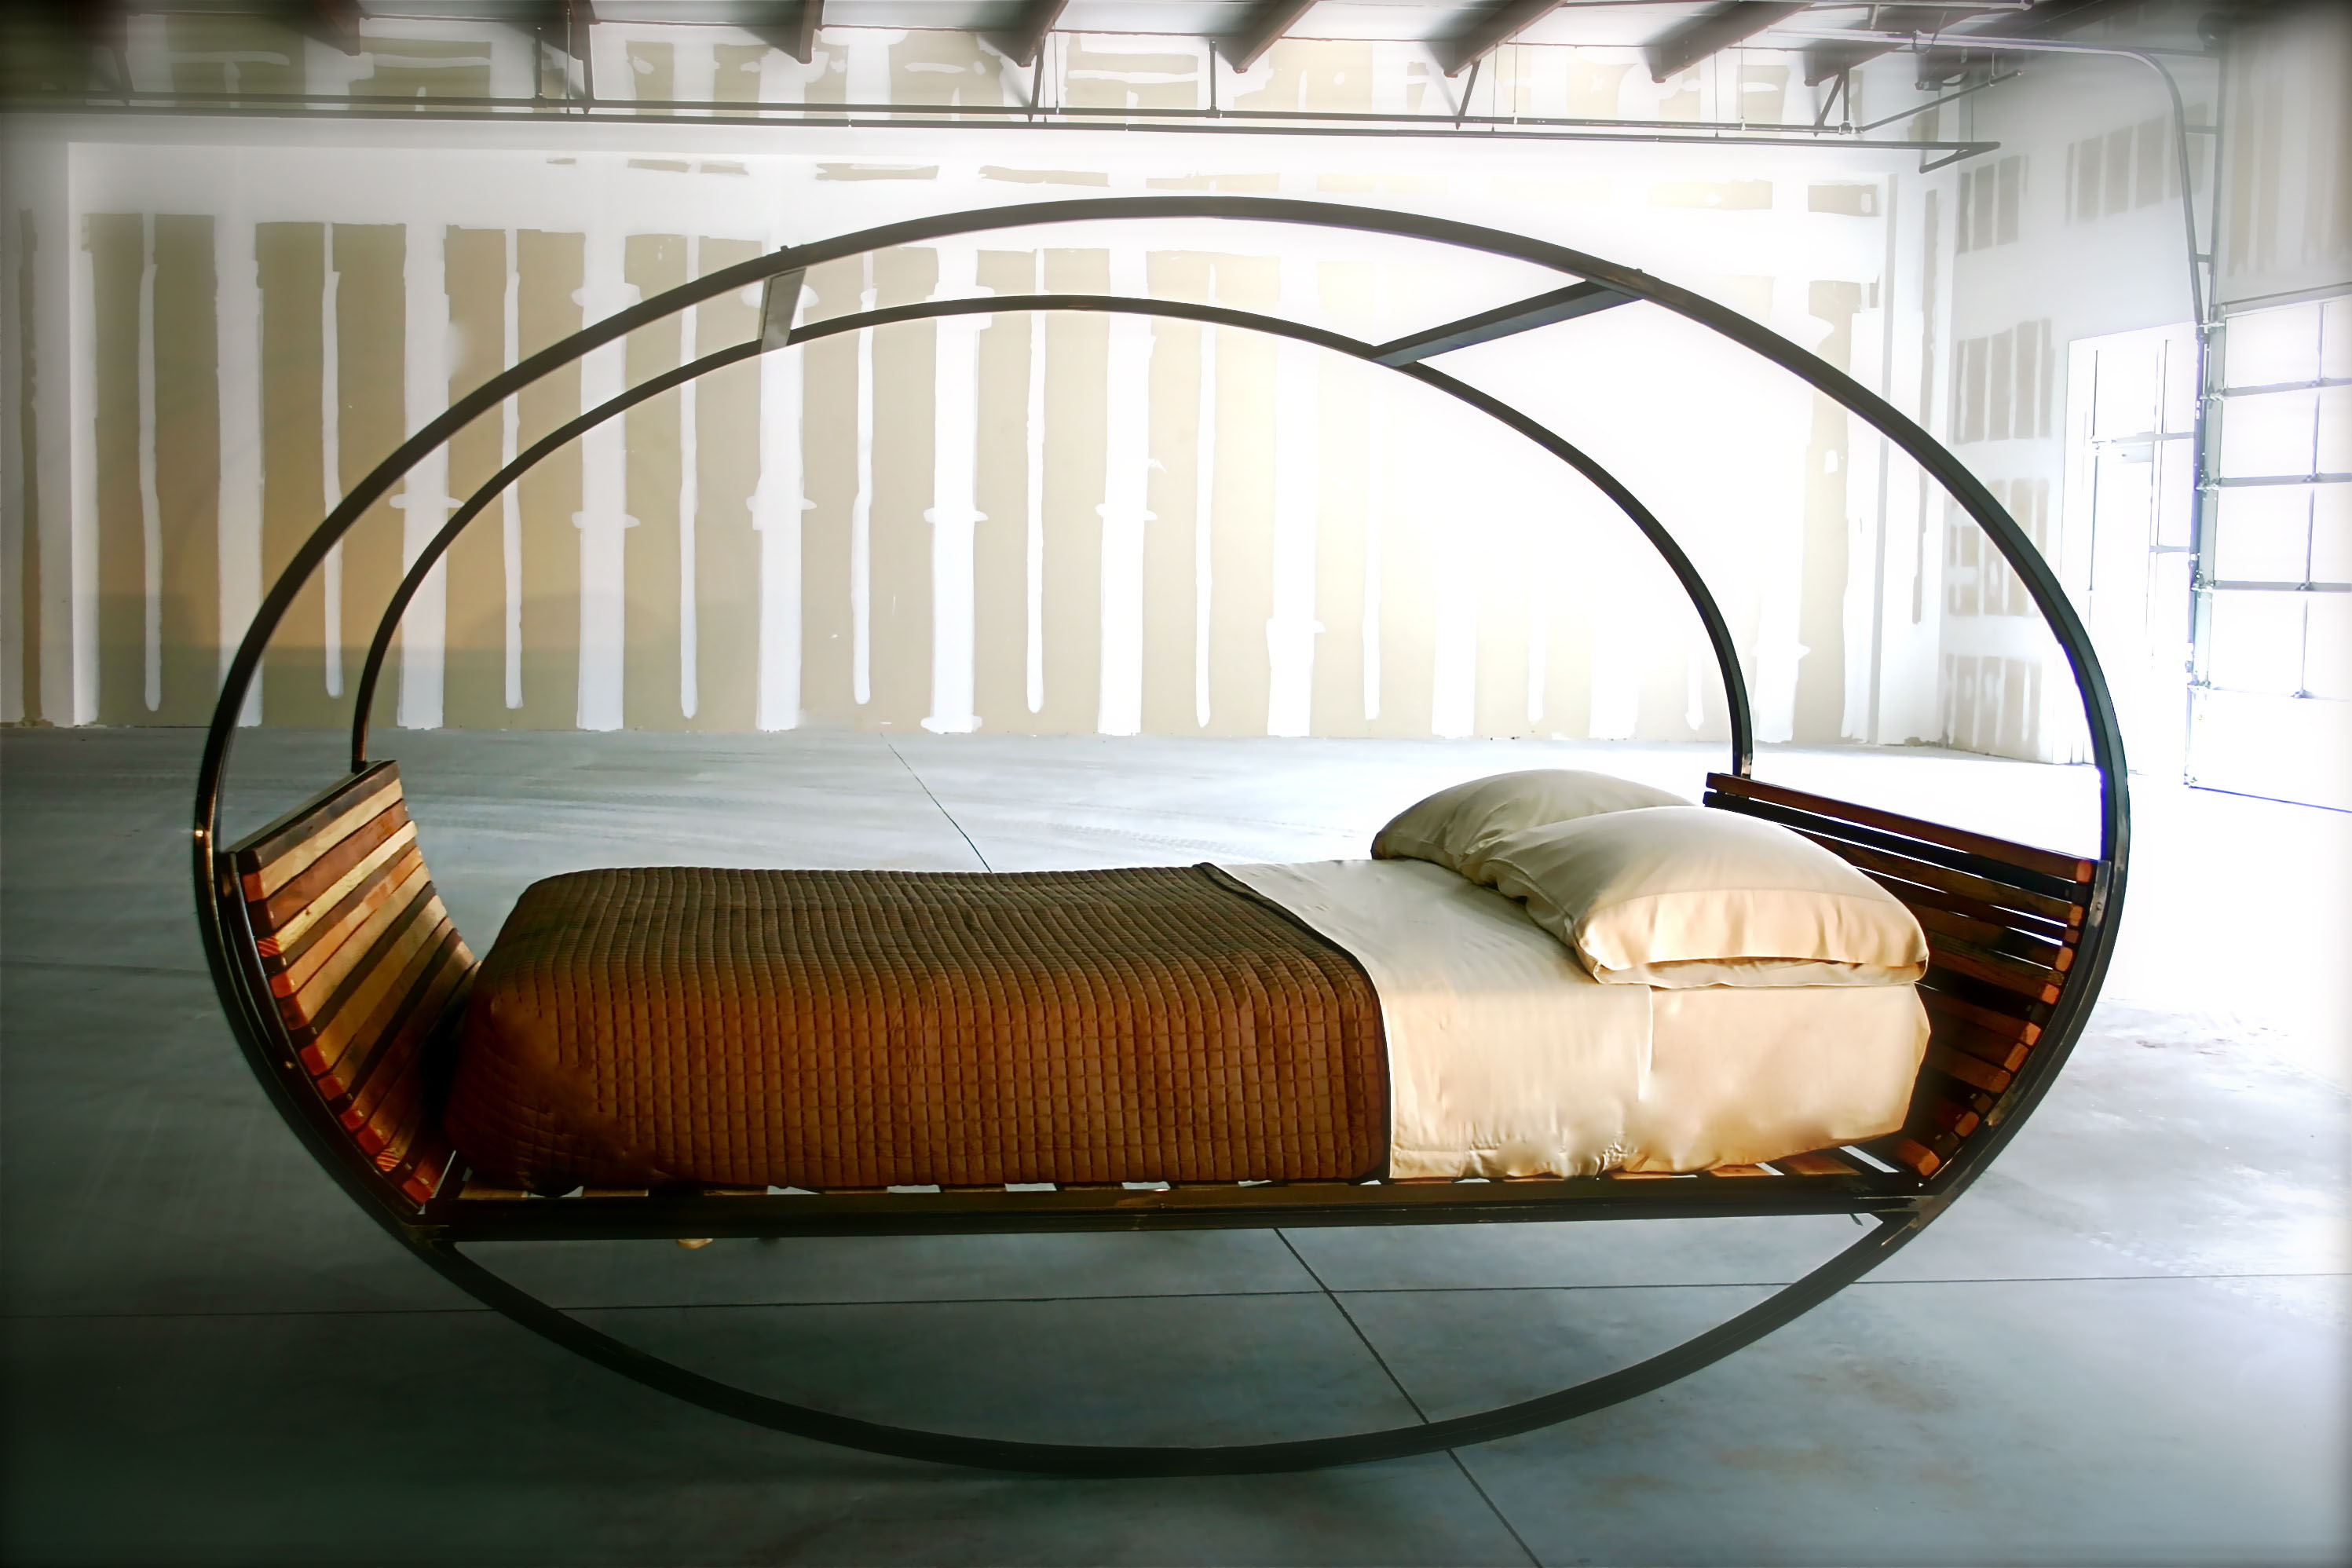 Mood Rocking Bed By Joe Manus Decoholic Interiors Inside Ideas Interiors design about Everything [magnanprojects.com]